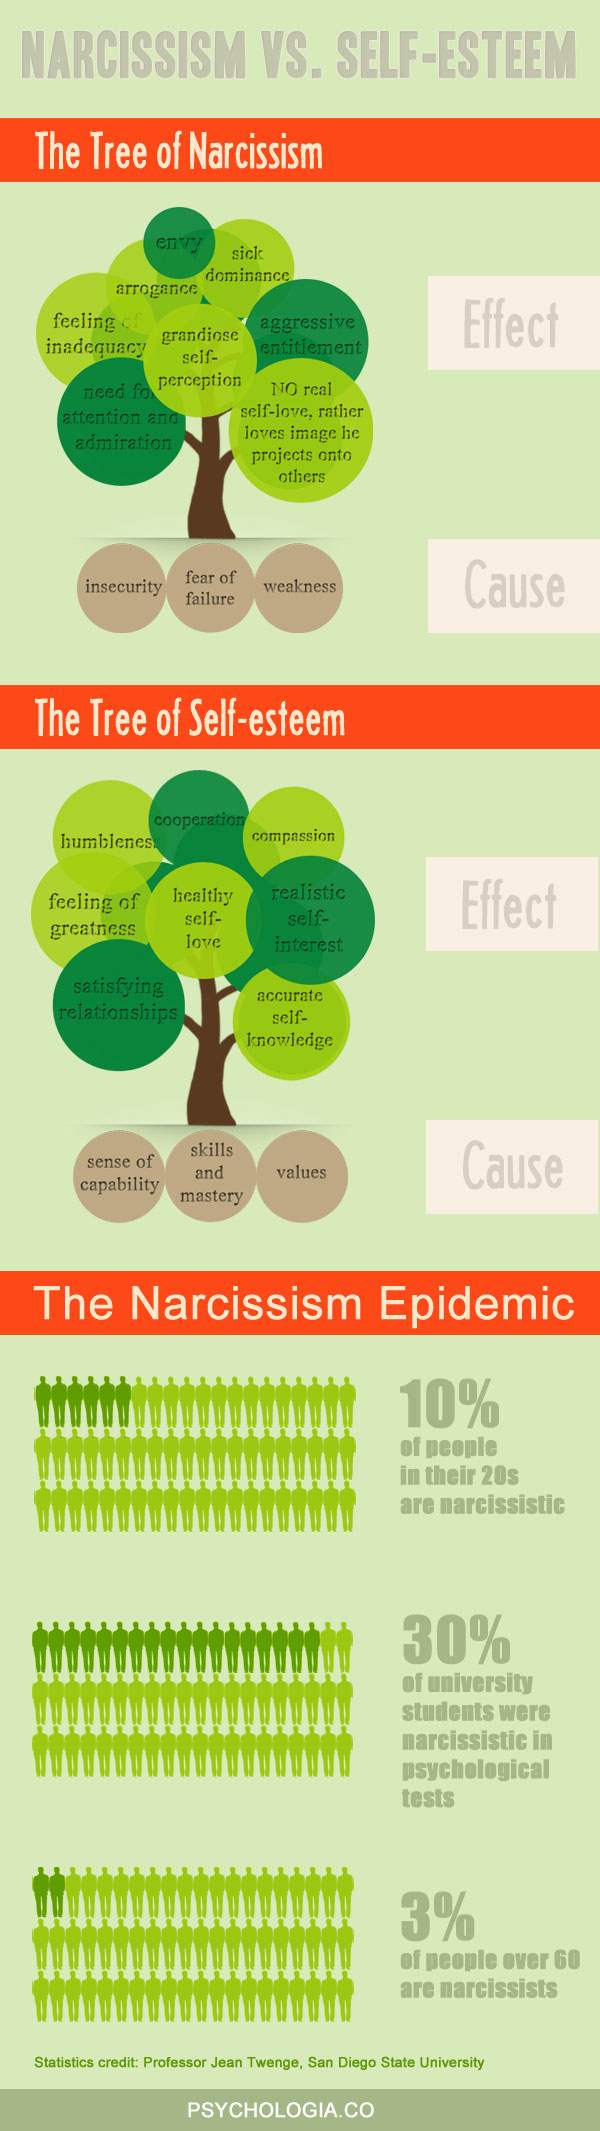 The Difference Between Narcissism and Self-esteem